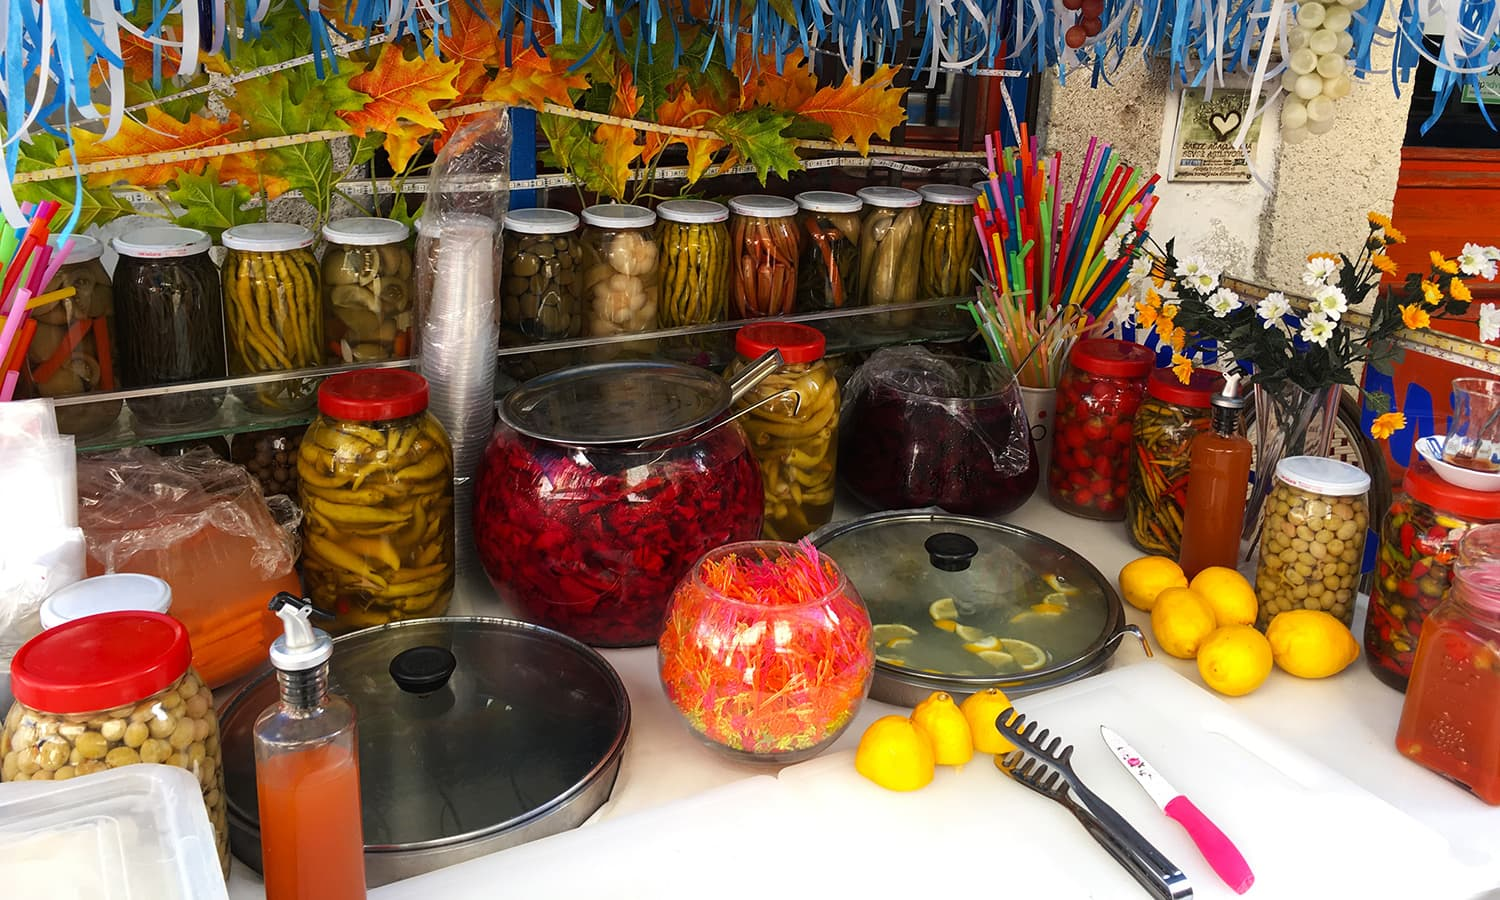 A stall of pickled vegetables.